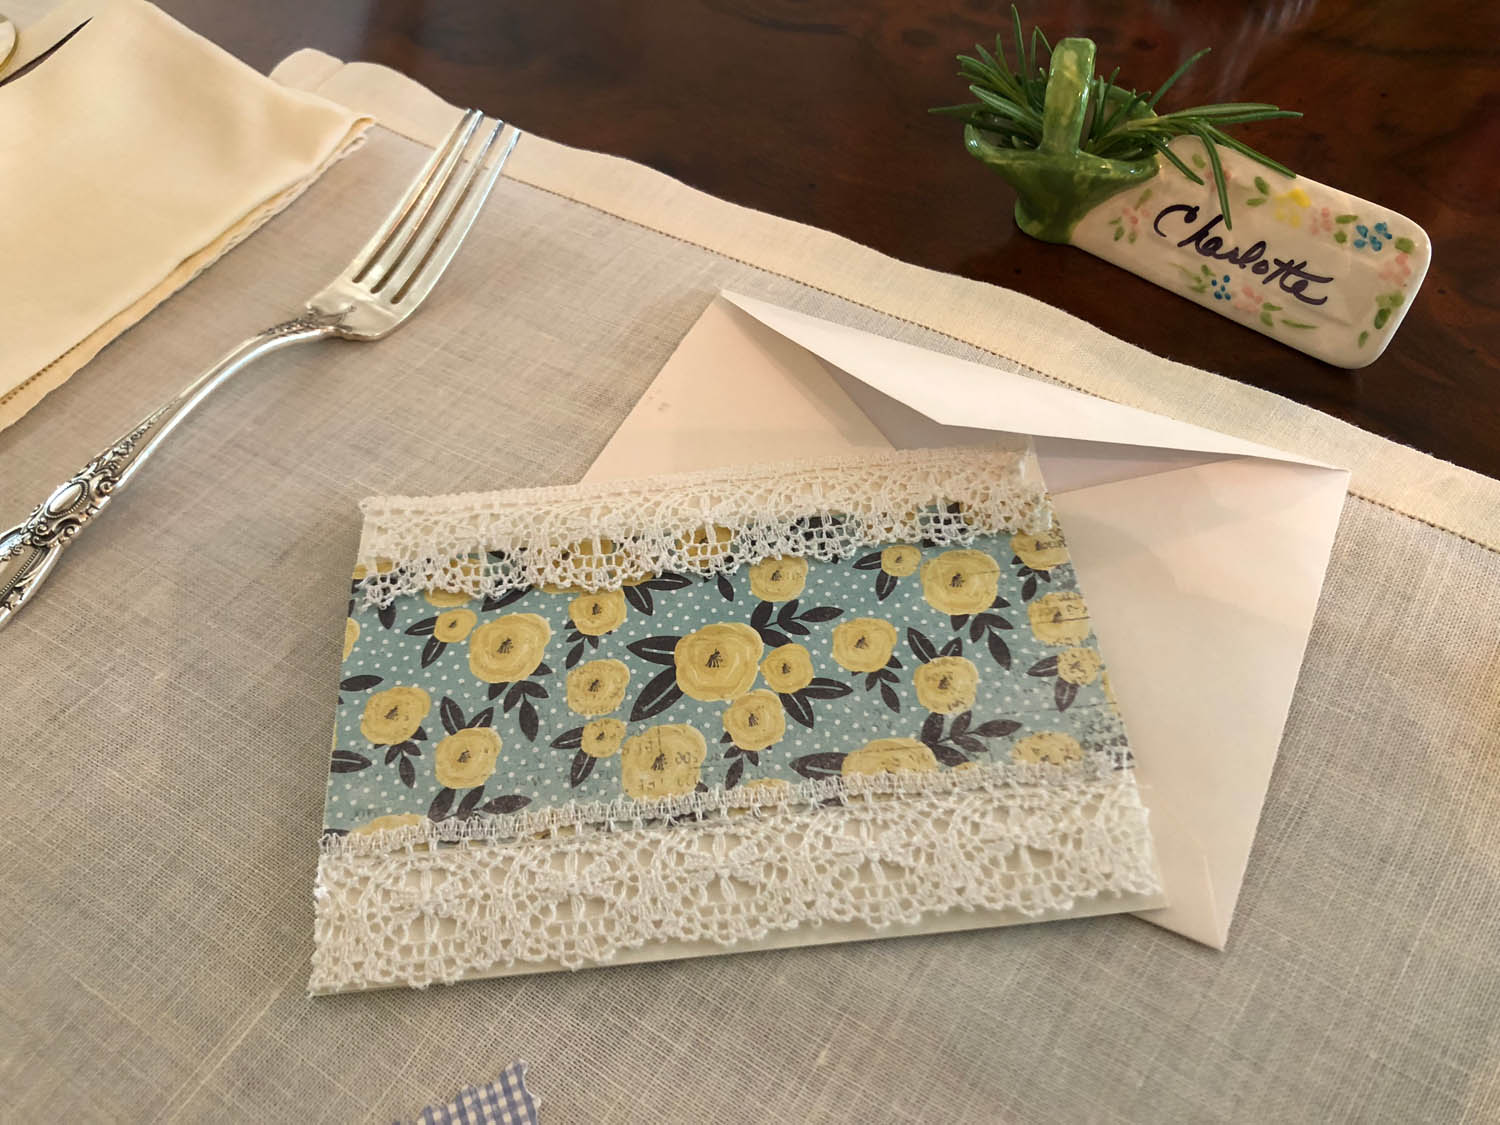 Finished hand-made card featuring vintage lace and fabric scraps